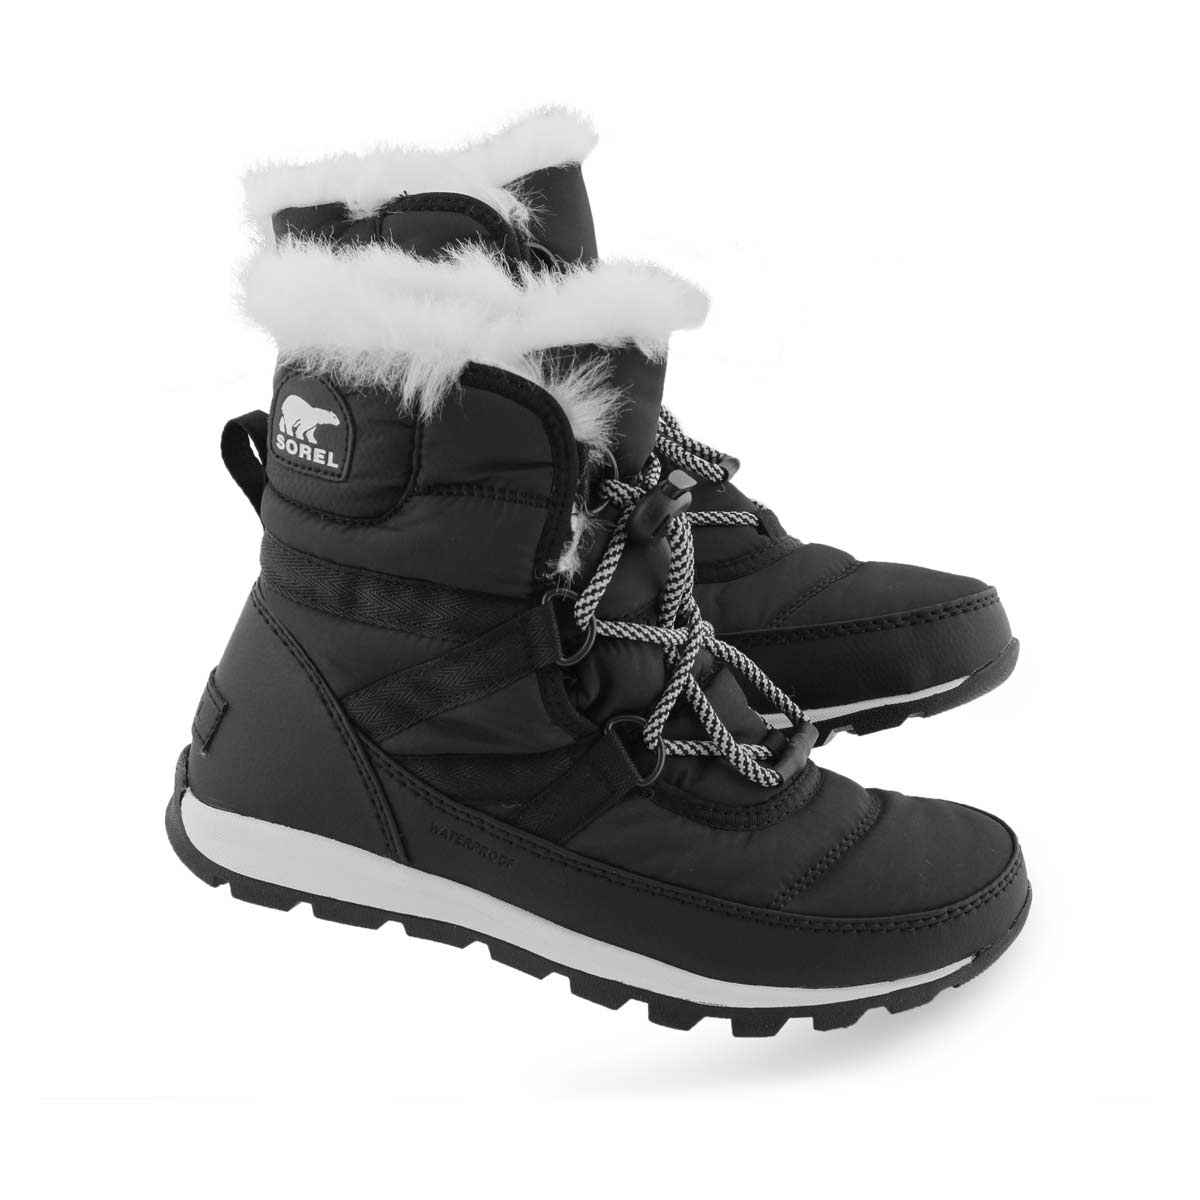 Grls Whitney Short Lace black snow boot